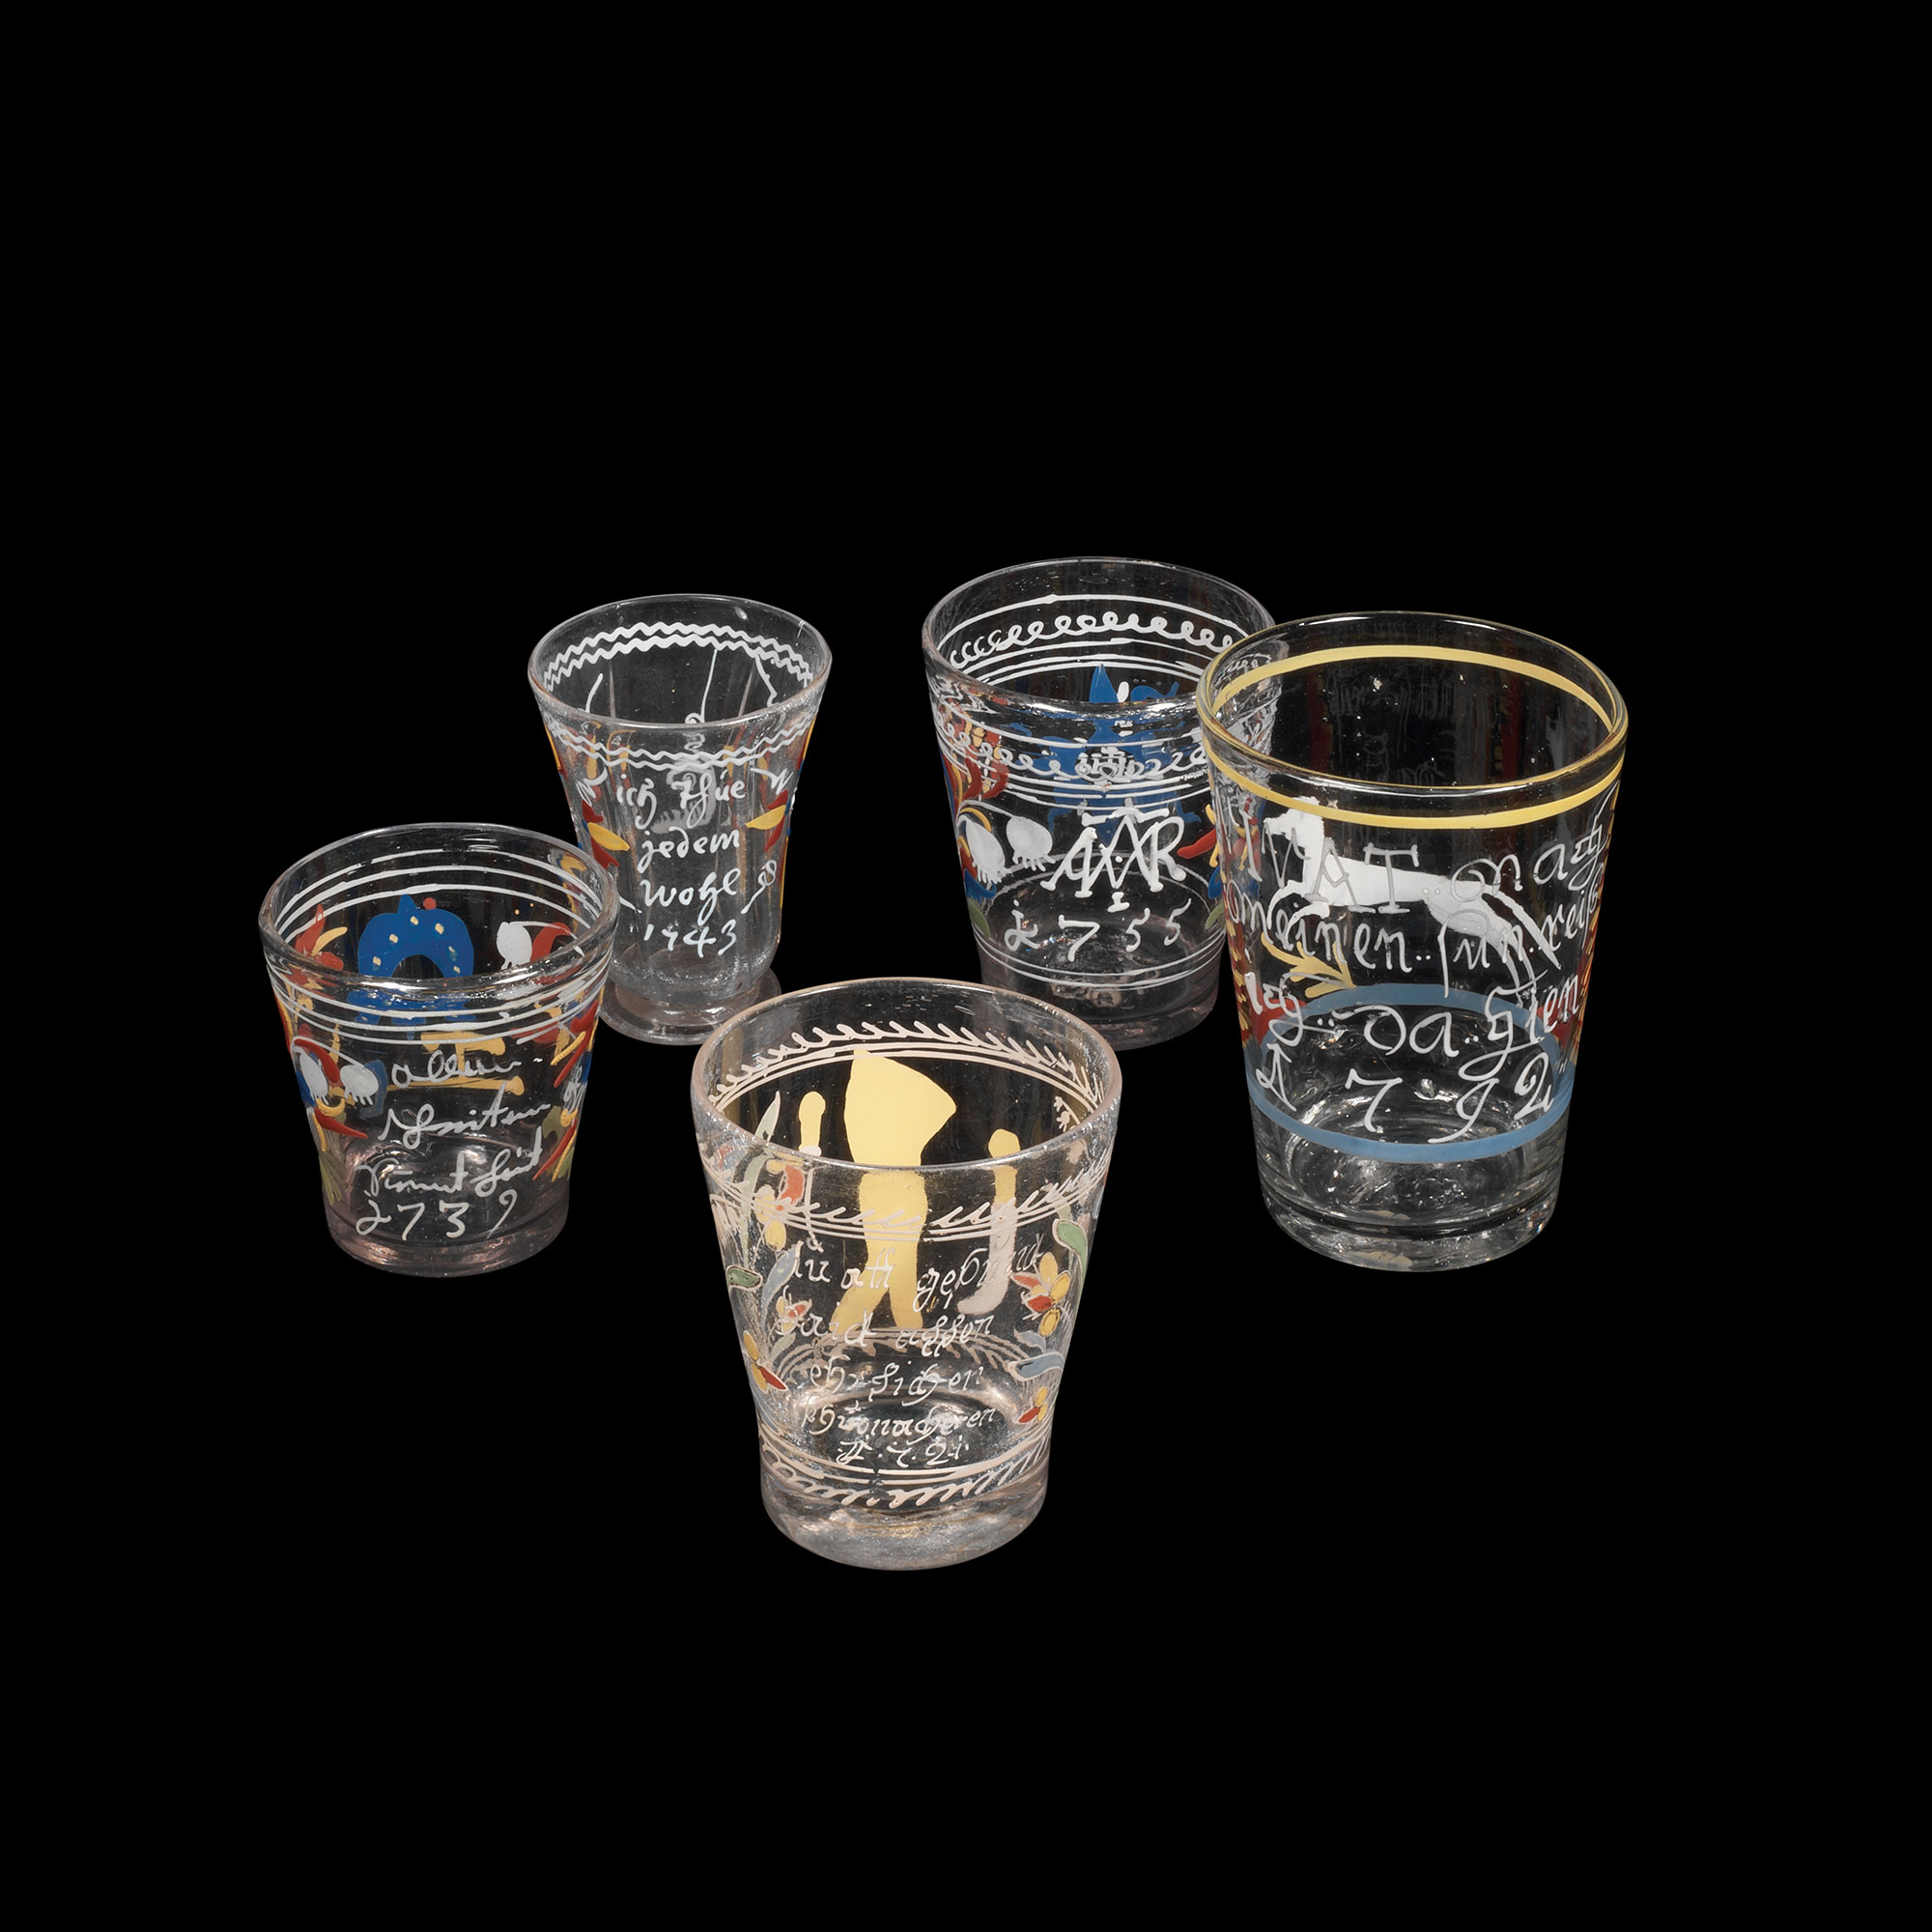 Five clear glasses decorated in enamel